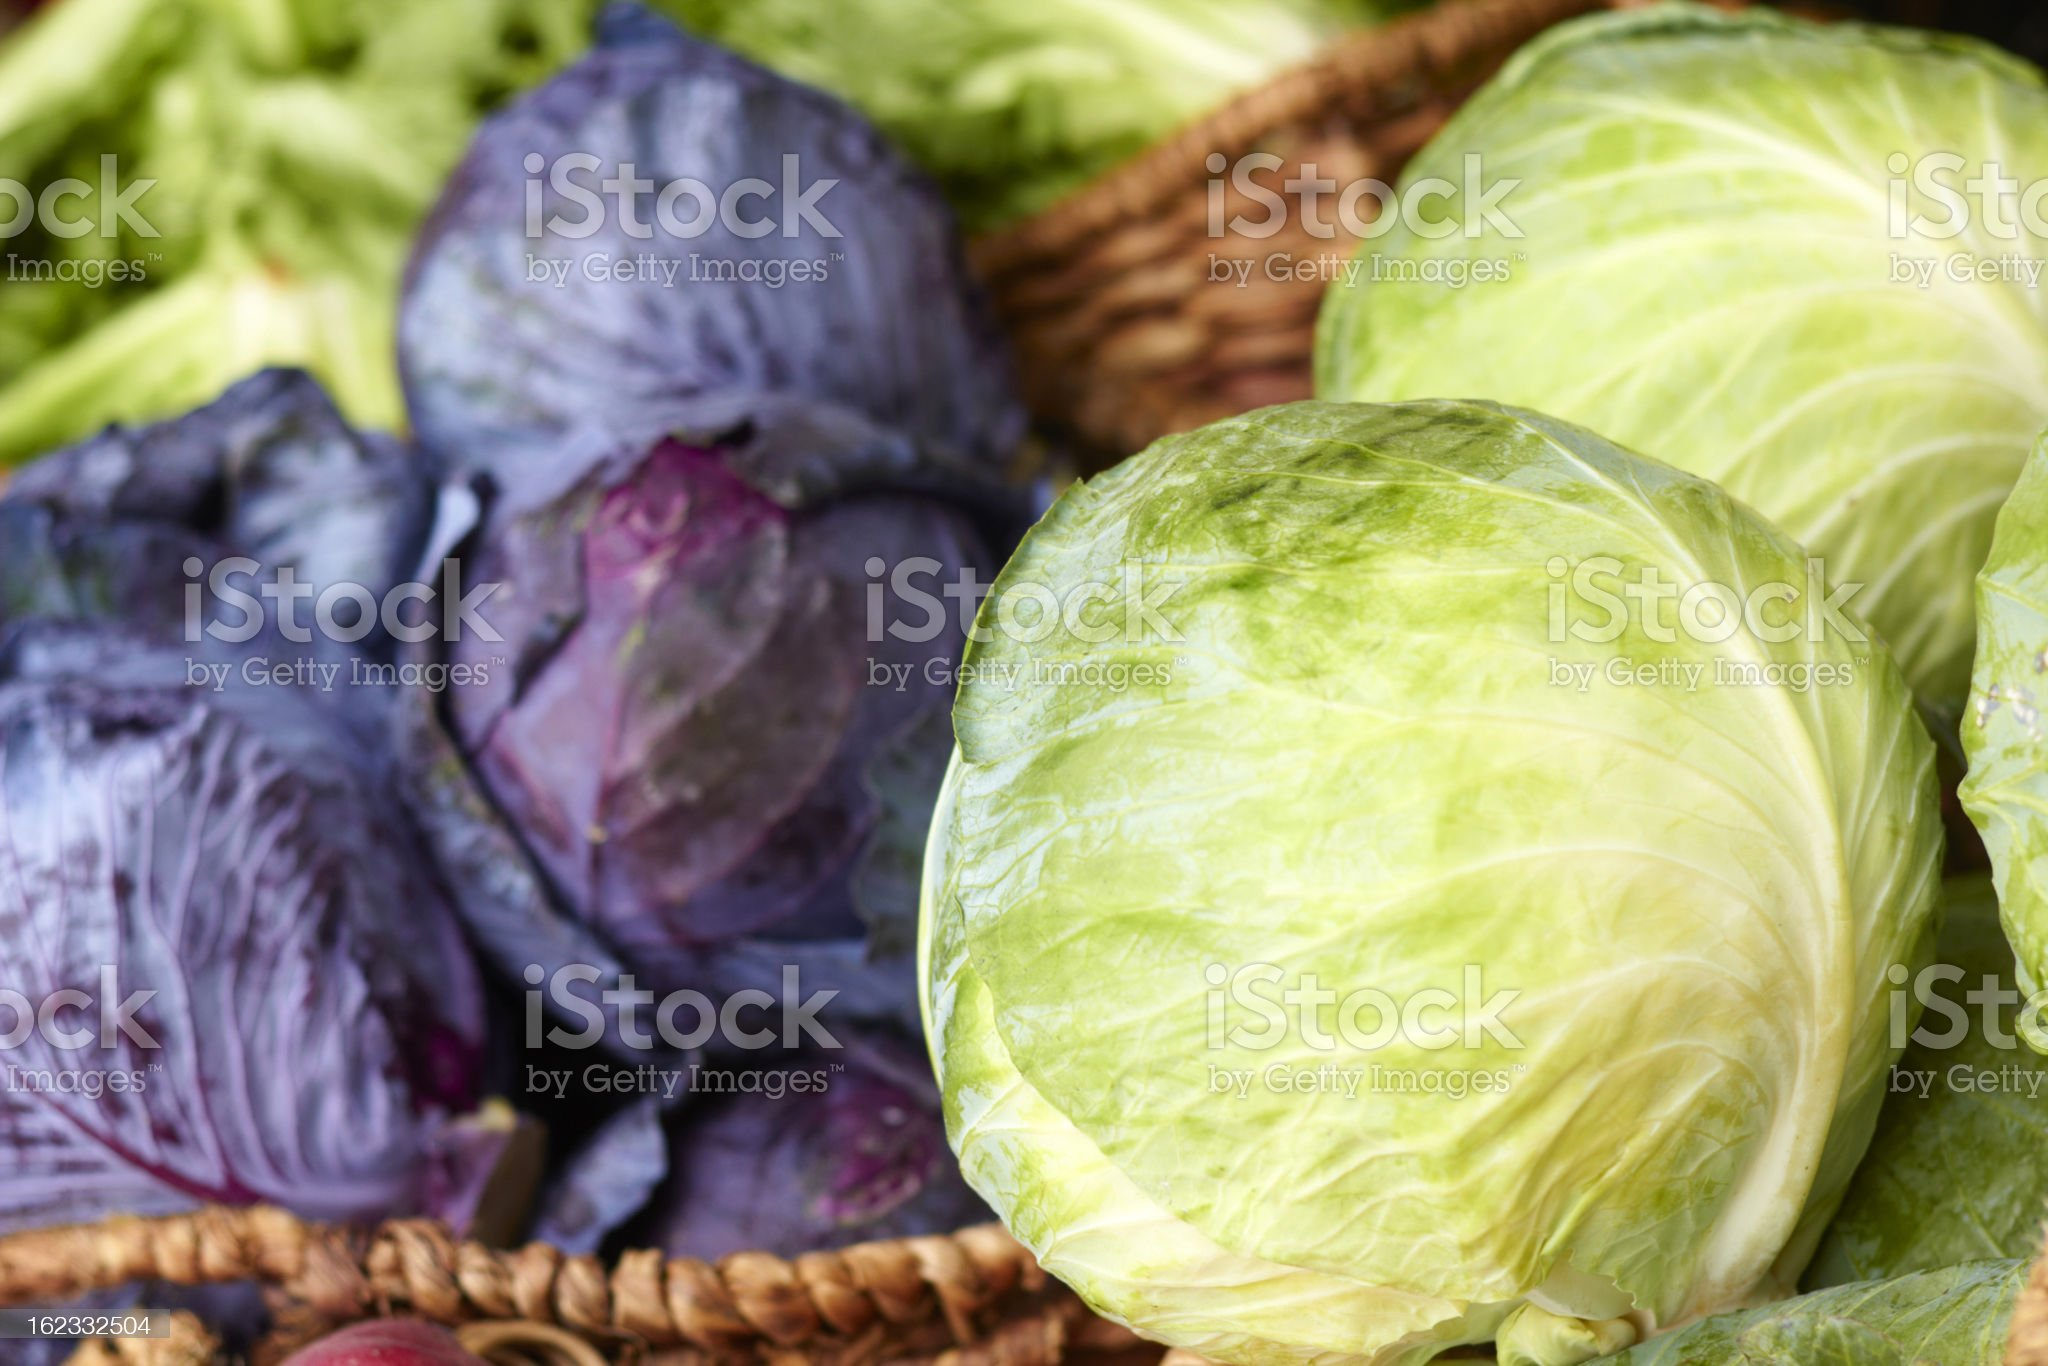 Purple And Ordinary Cabbages On Sale At the Market royalty-free stock photo